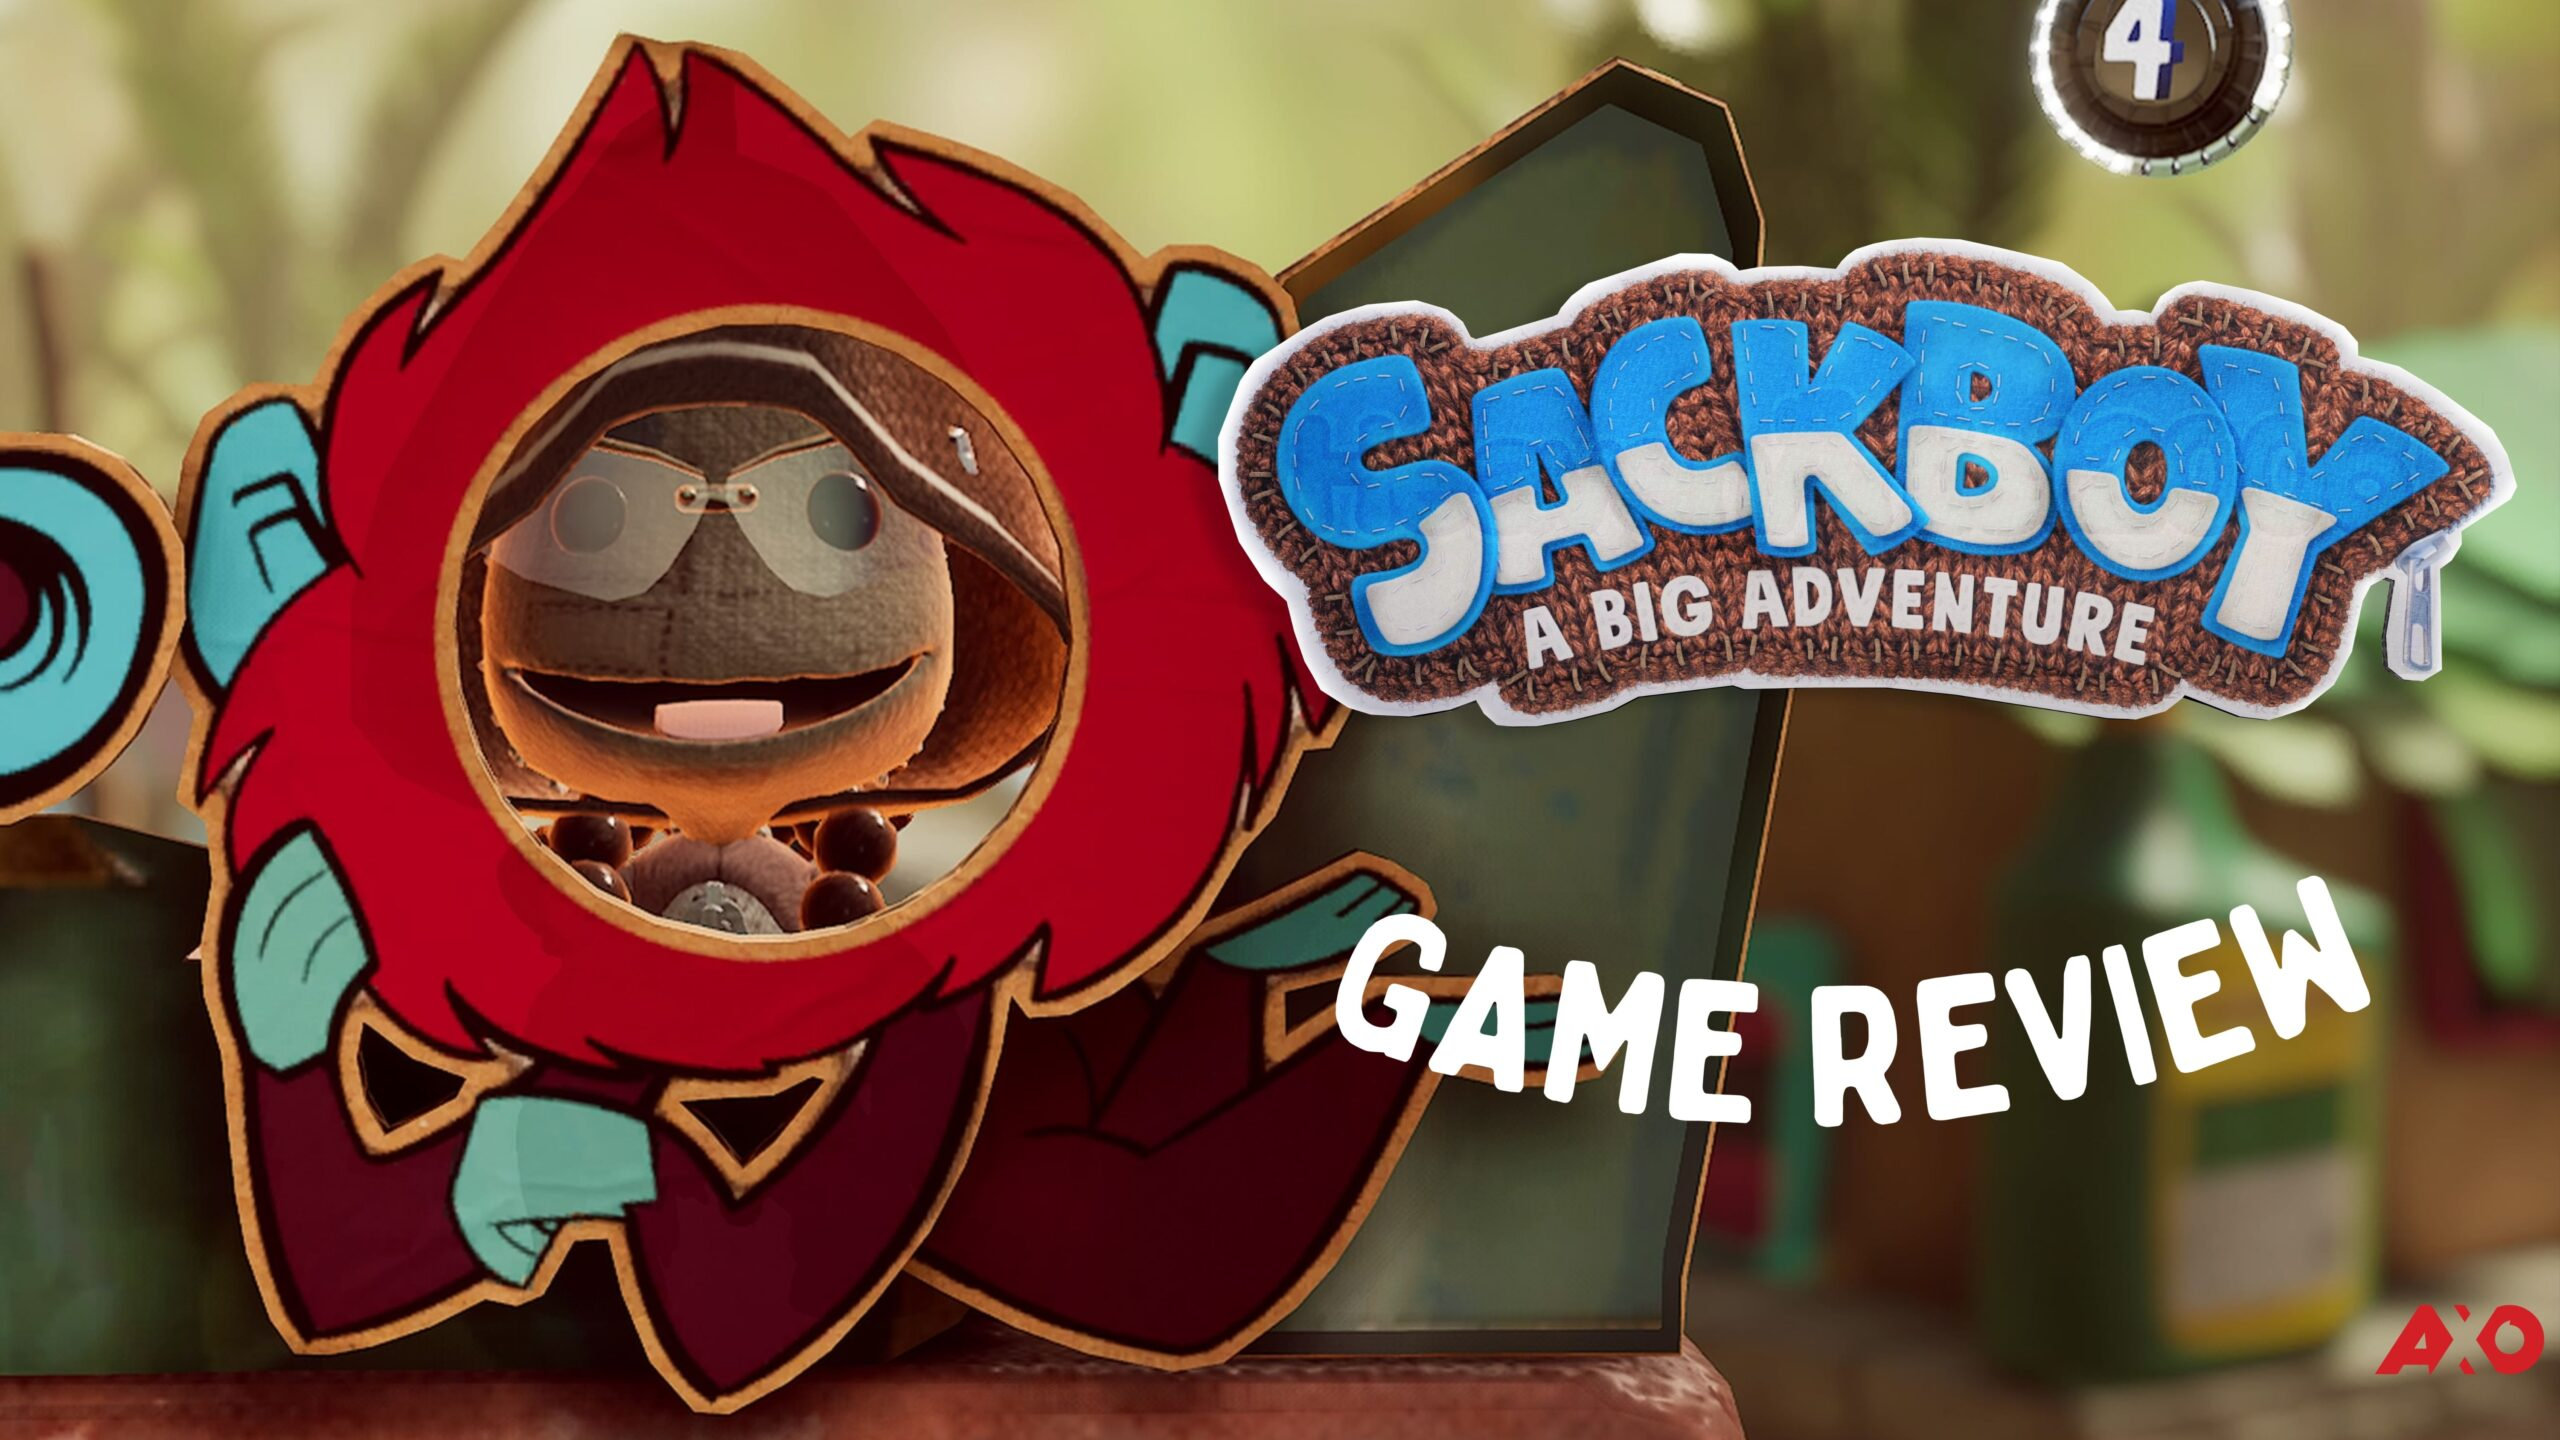 Sackboy: A Big Adventure PS4 Review - Super Adorable With Loads Of Co-Op Fun! 11